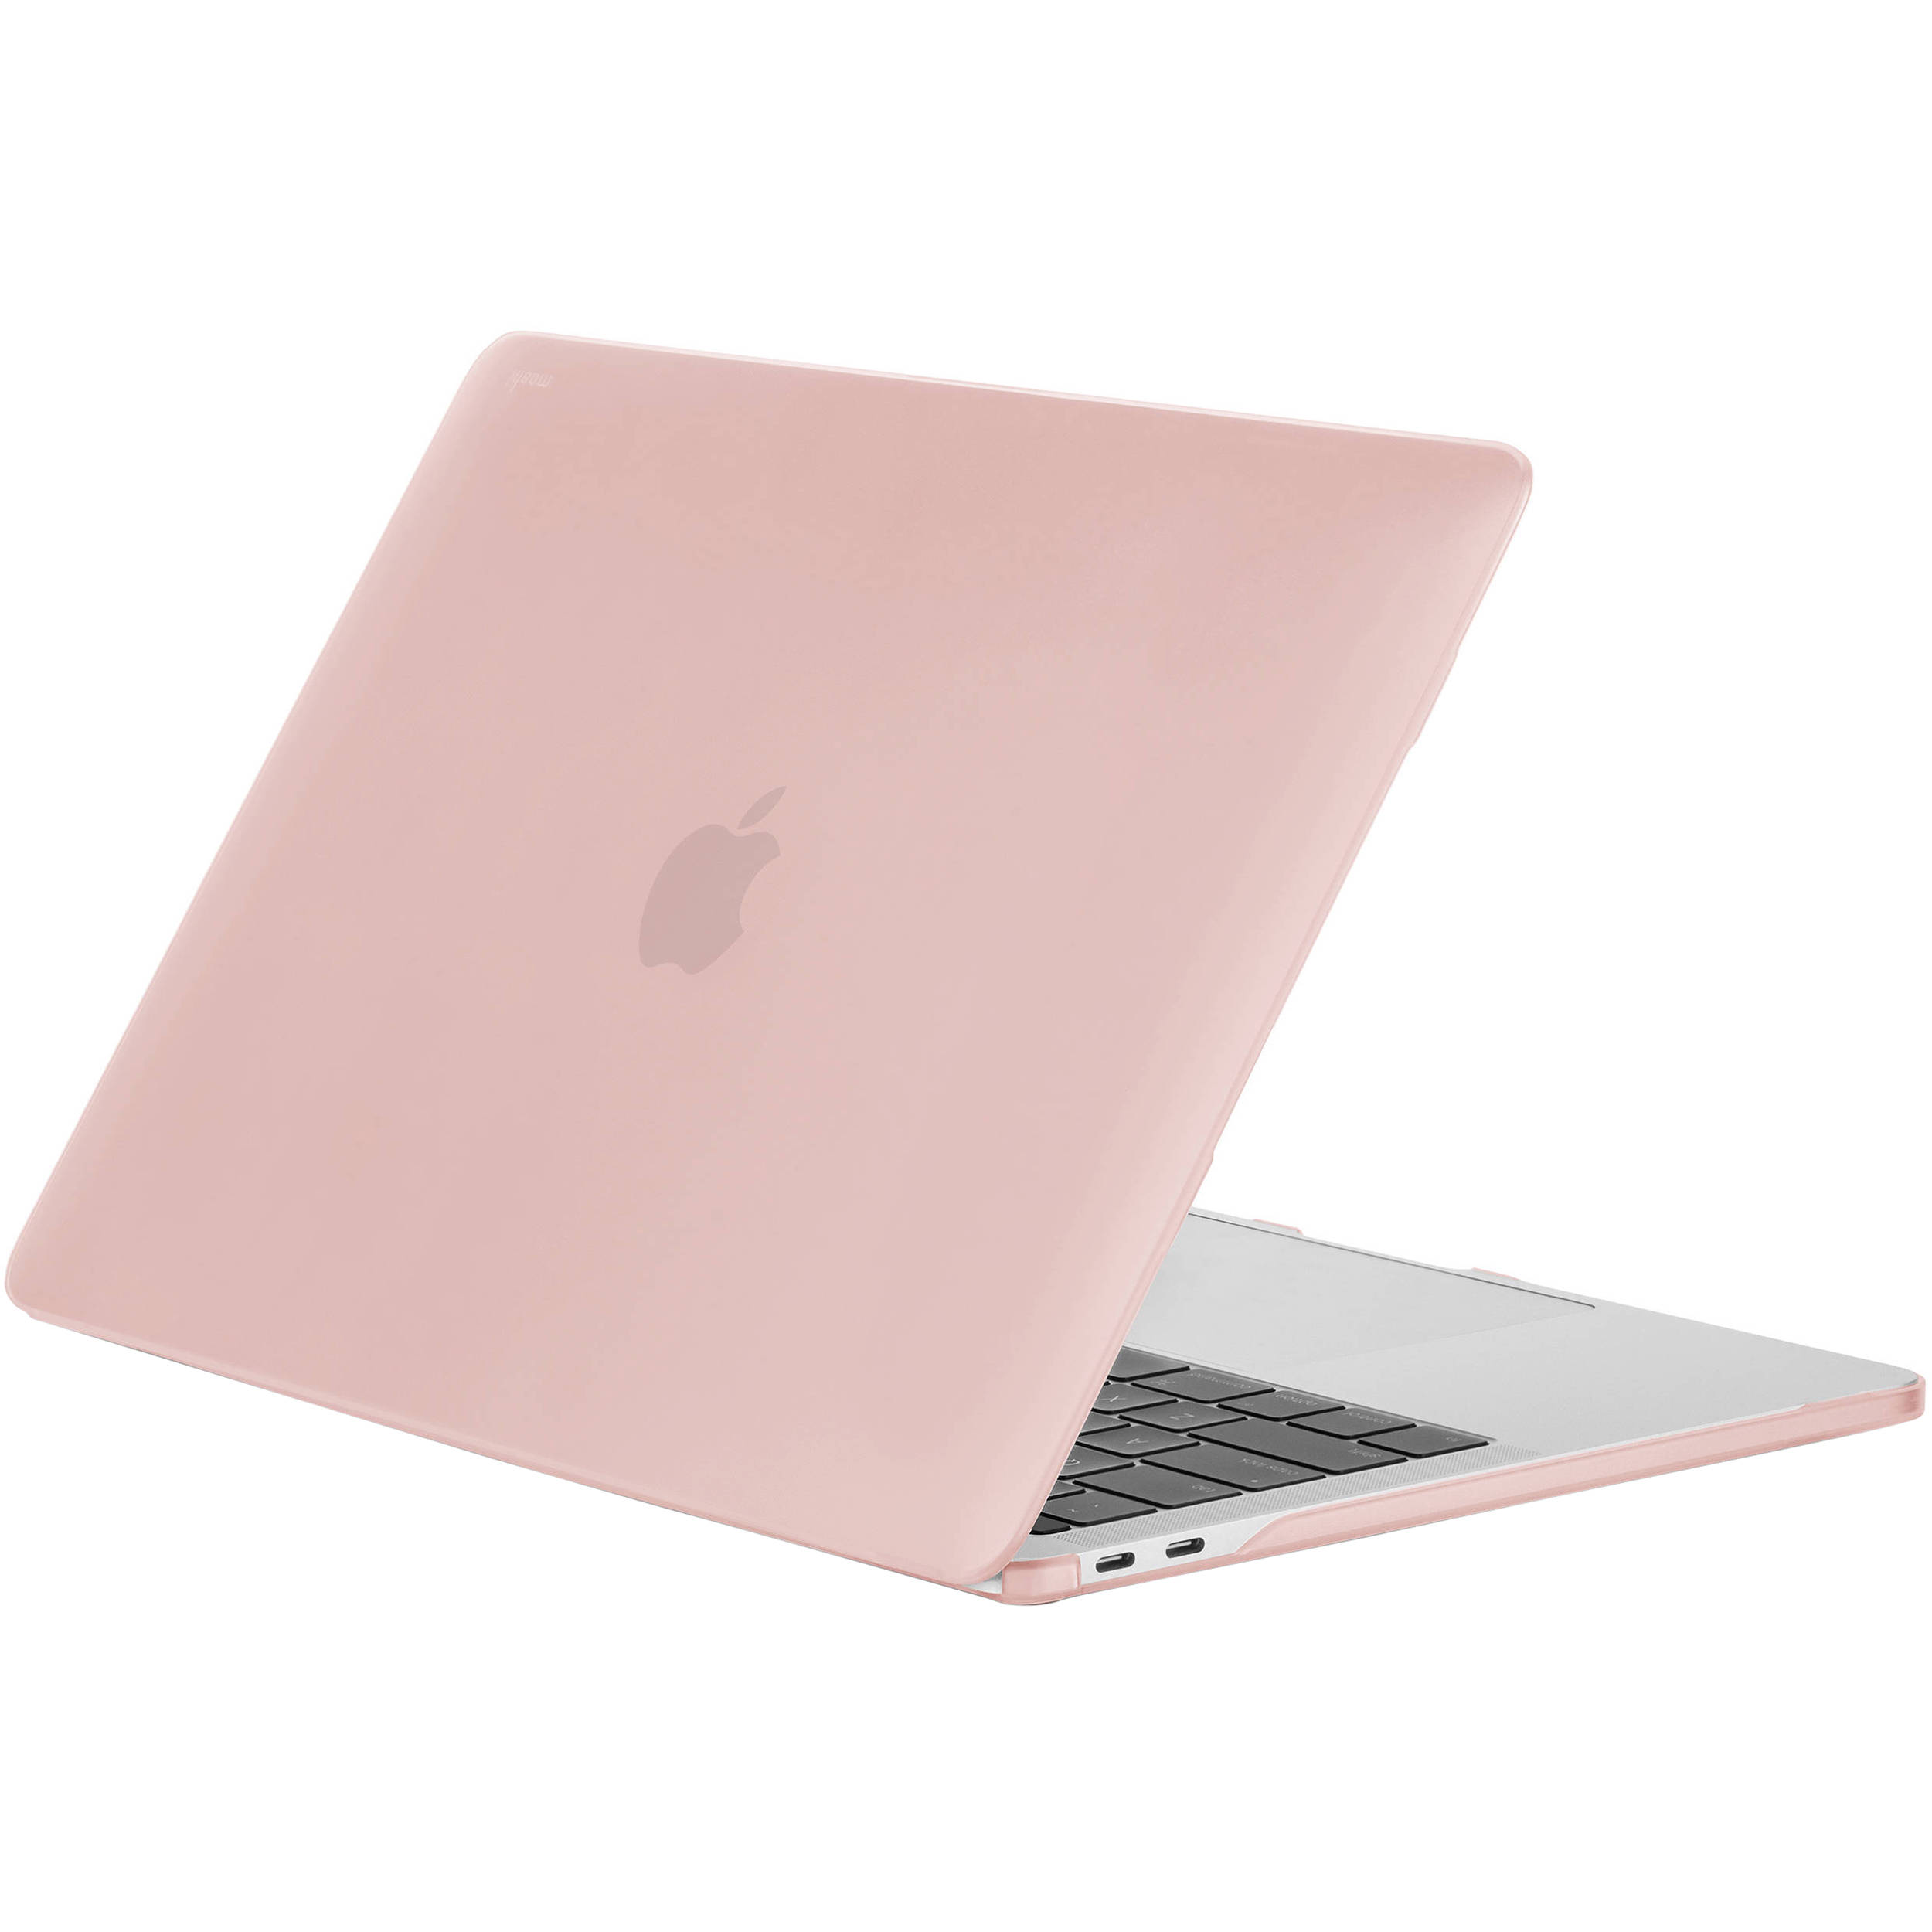 buy popular 1ee4d ae687 Moshi iGlaze Pro 13 Case for MacBook Pro with Thunderbolt 3 (Blush Pink)